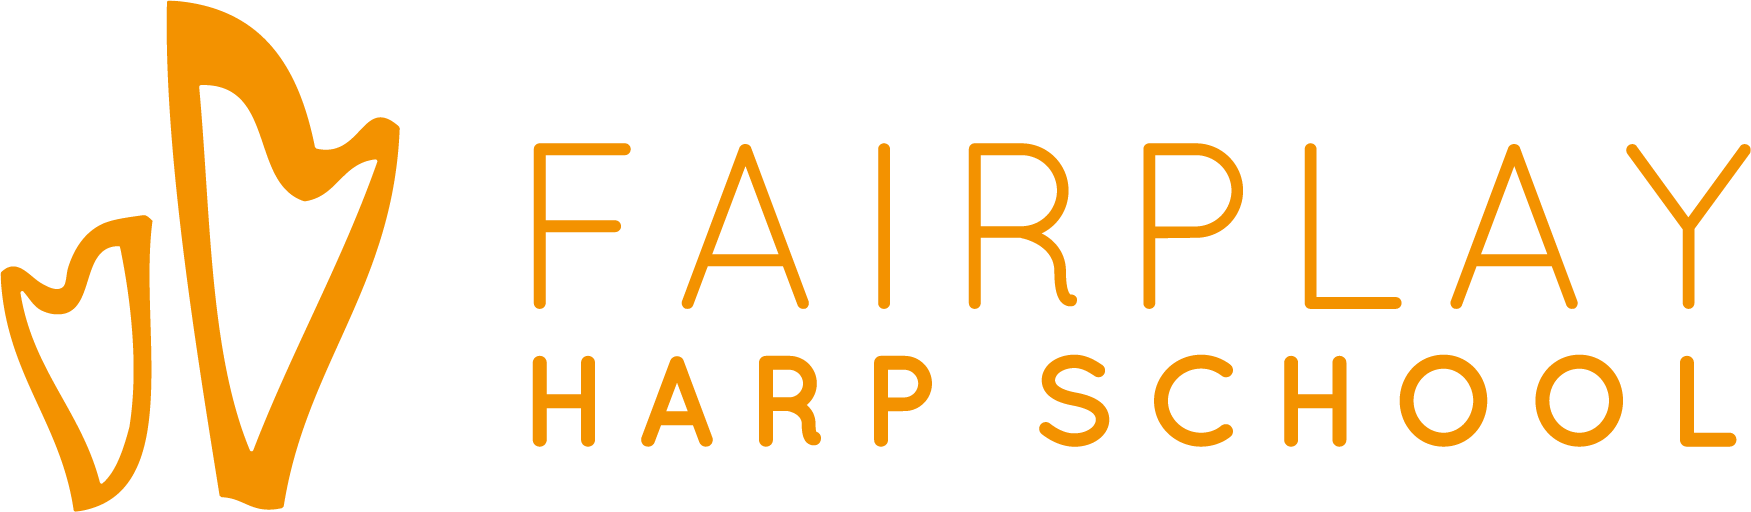 Fairplay Harp School